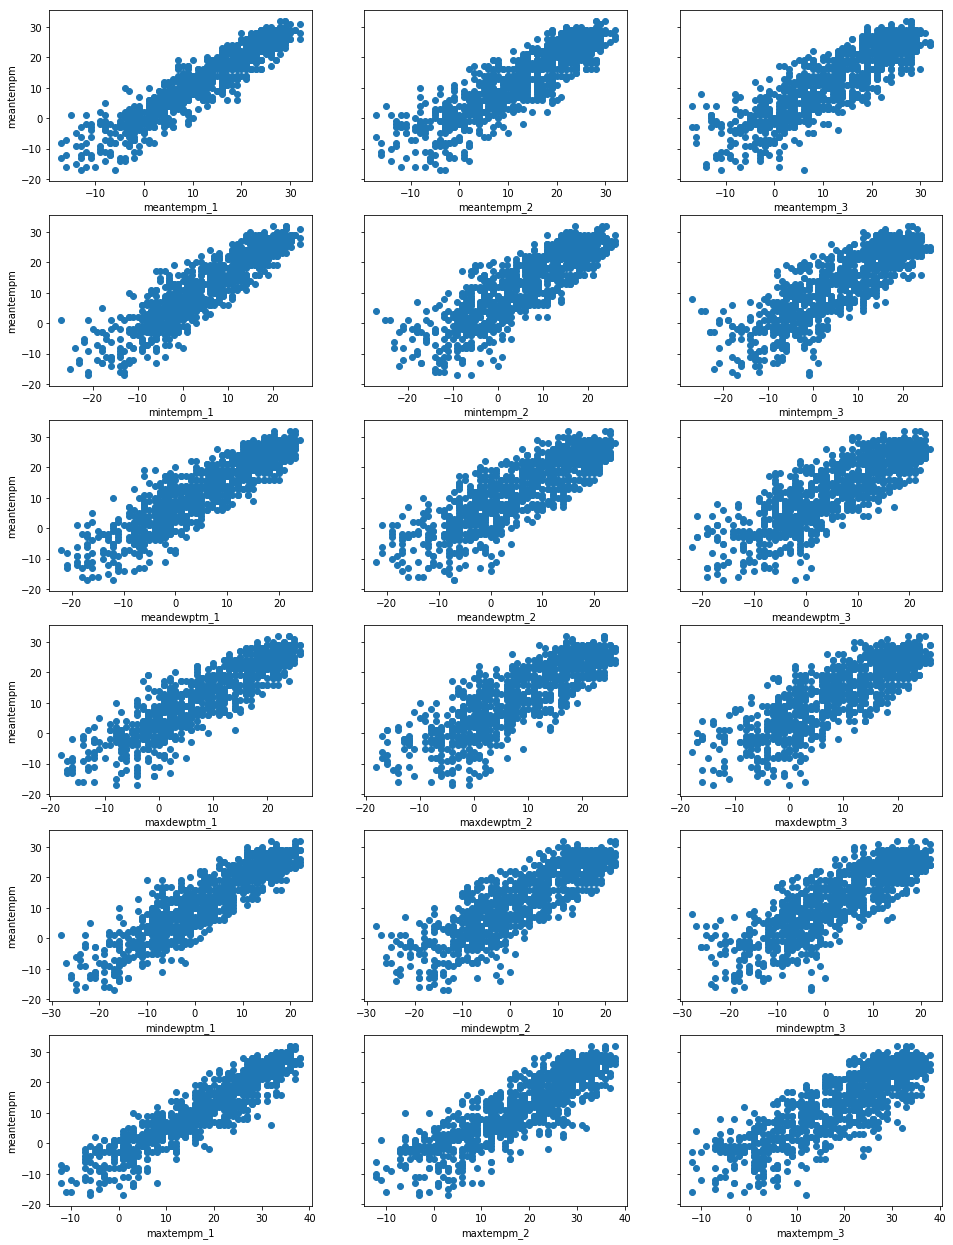 meantempm scatter plot